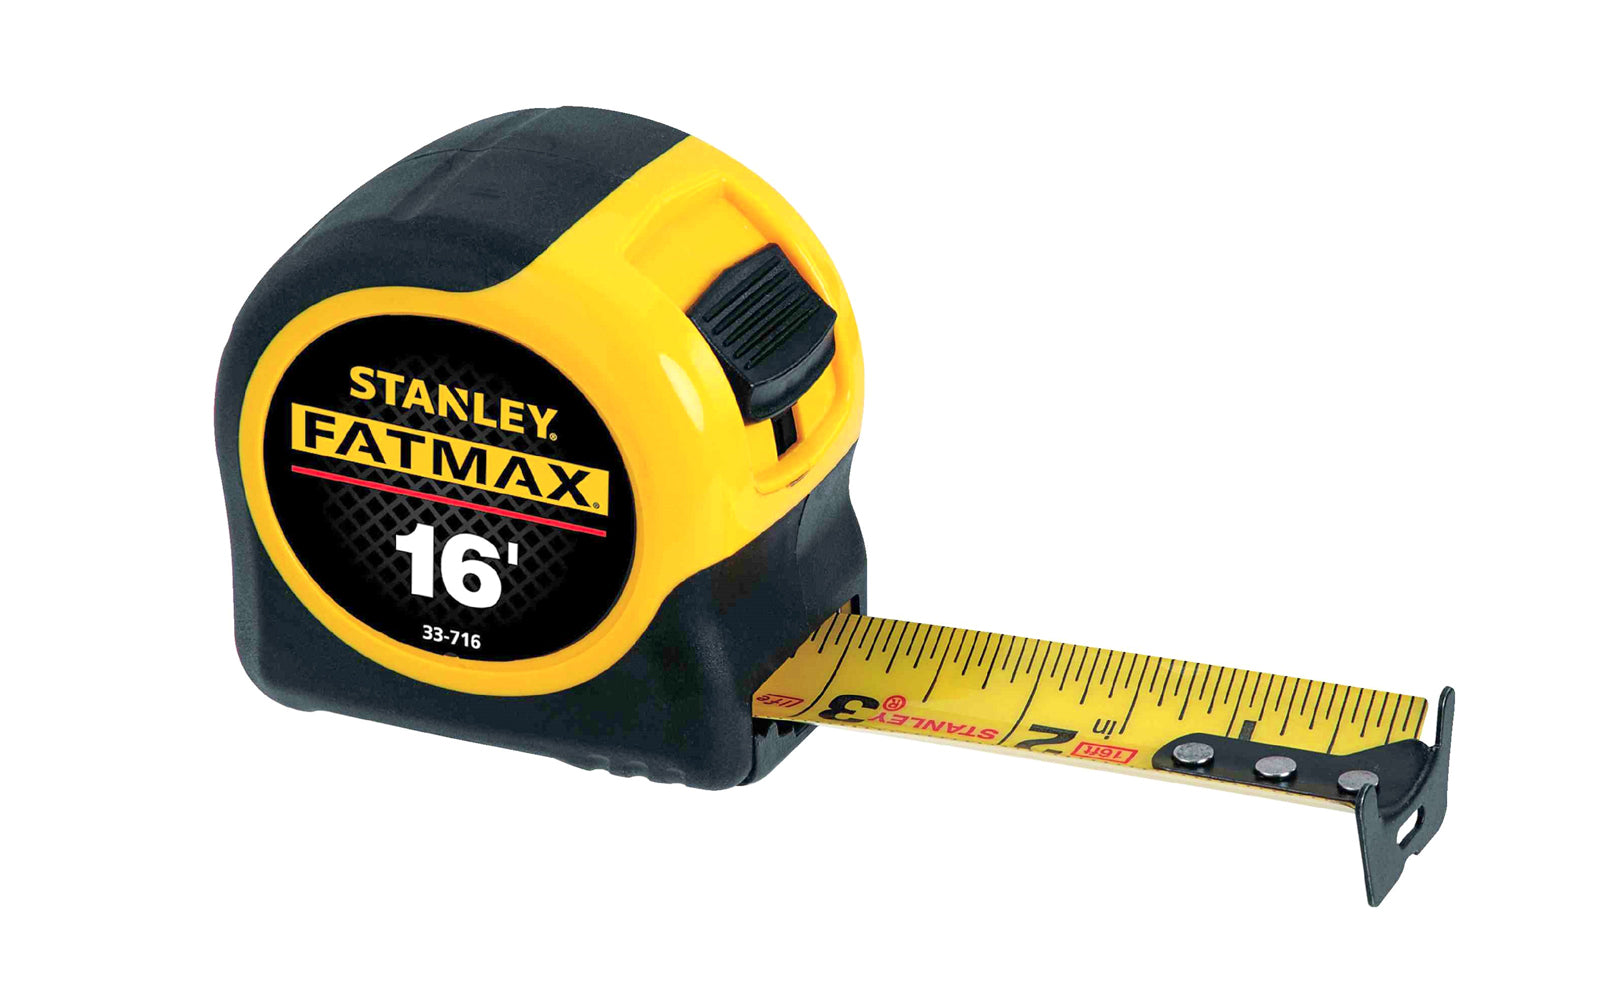 Stanley Fatmax 16' Tape Measure ~ 33-716 - Made in USA